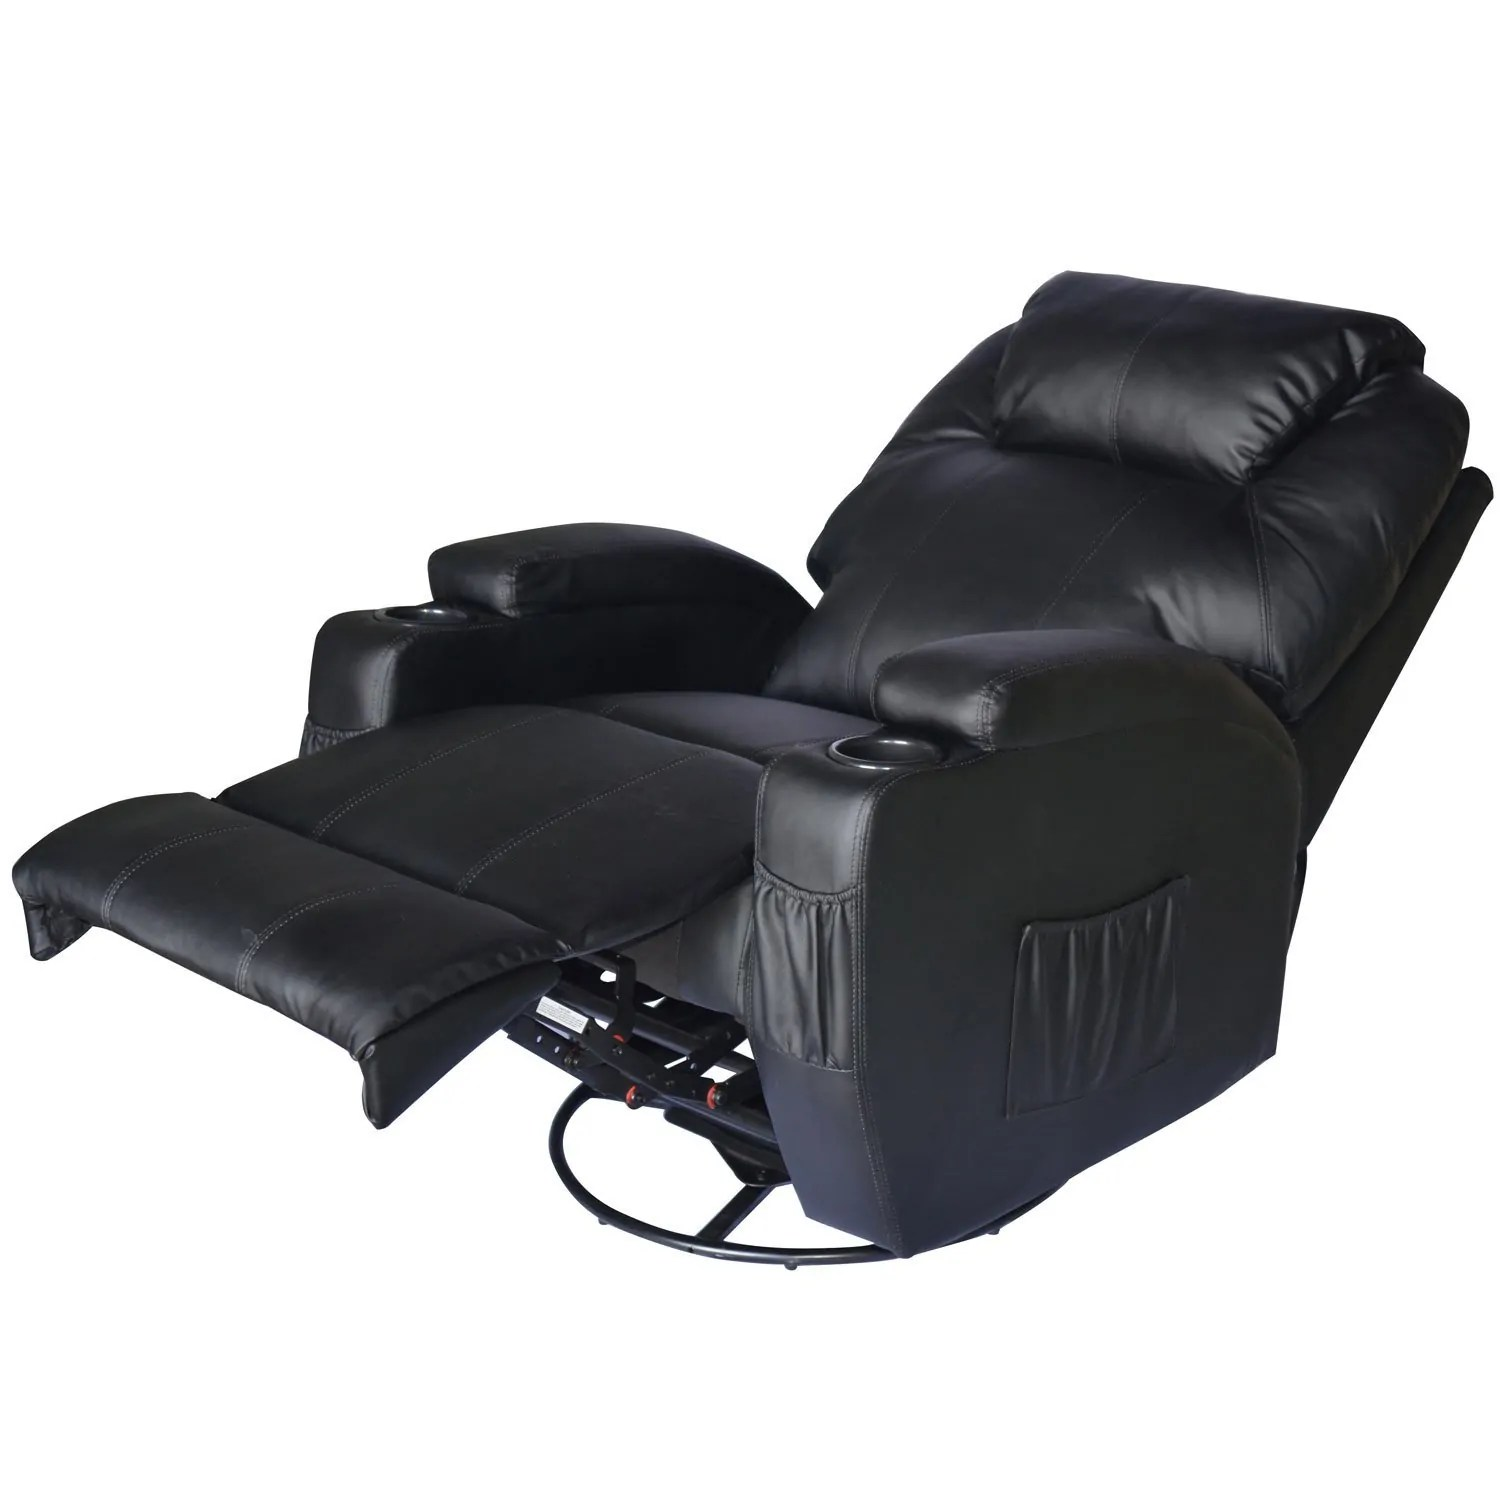 Relax Massage Sessel Massagesessel Relaxsessel Top Kundenbewertung